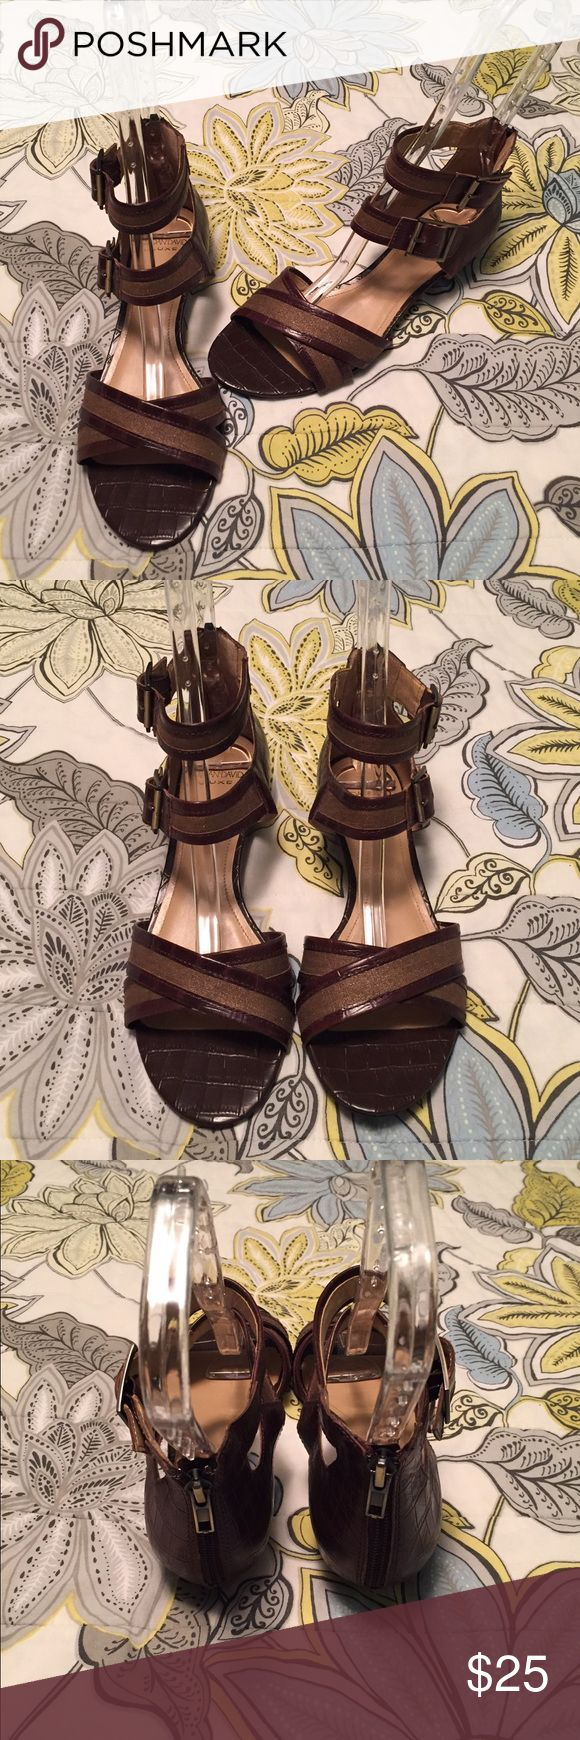 "Circa Joan & David Luxe ""CJQuant"" Brown Sandal - 7 Like new Circa Joan & David Luxe ""CJQuant"" Brown Sandal.  Pebbled leather upper with metallic trim. Synthetic sole.  Worn several times but in mint condition.  No scratches or tears.  Heel height 1 1/2"". 12.   ✅ Bundle & Save ✅ Open to offers 🚫 No lowball offers 🚫 No trades Circa Joan & David  Shoes Sandals"